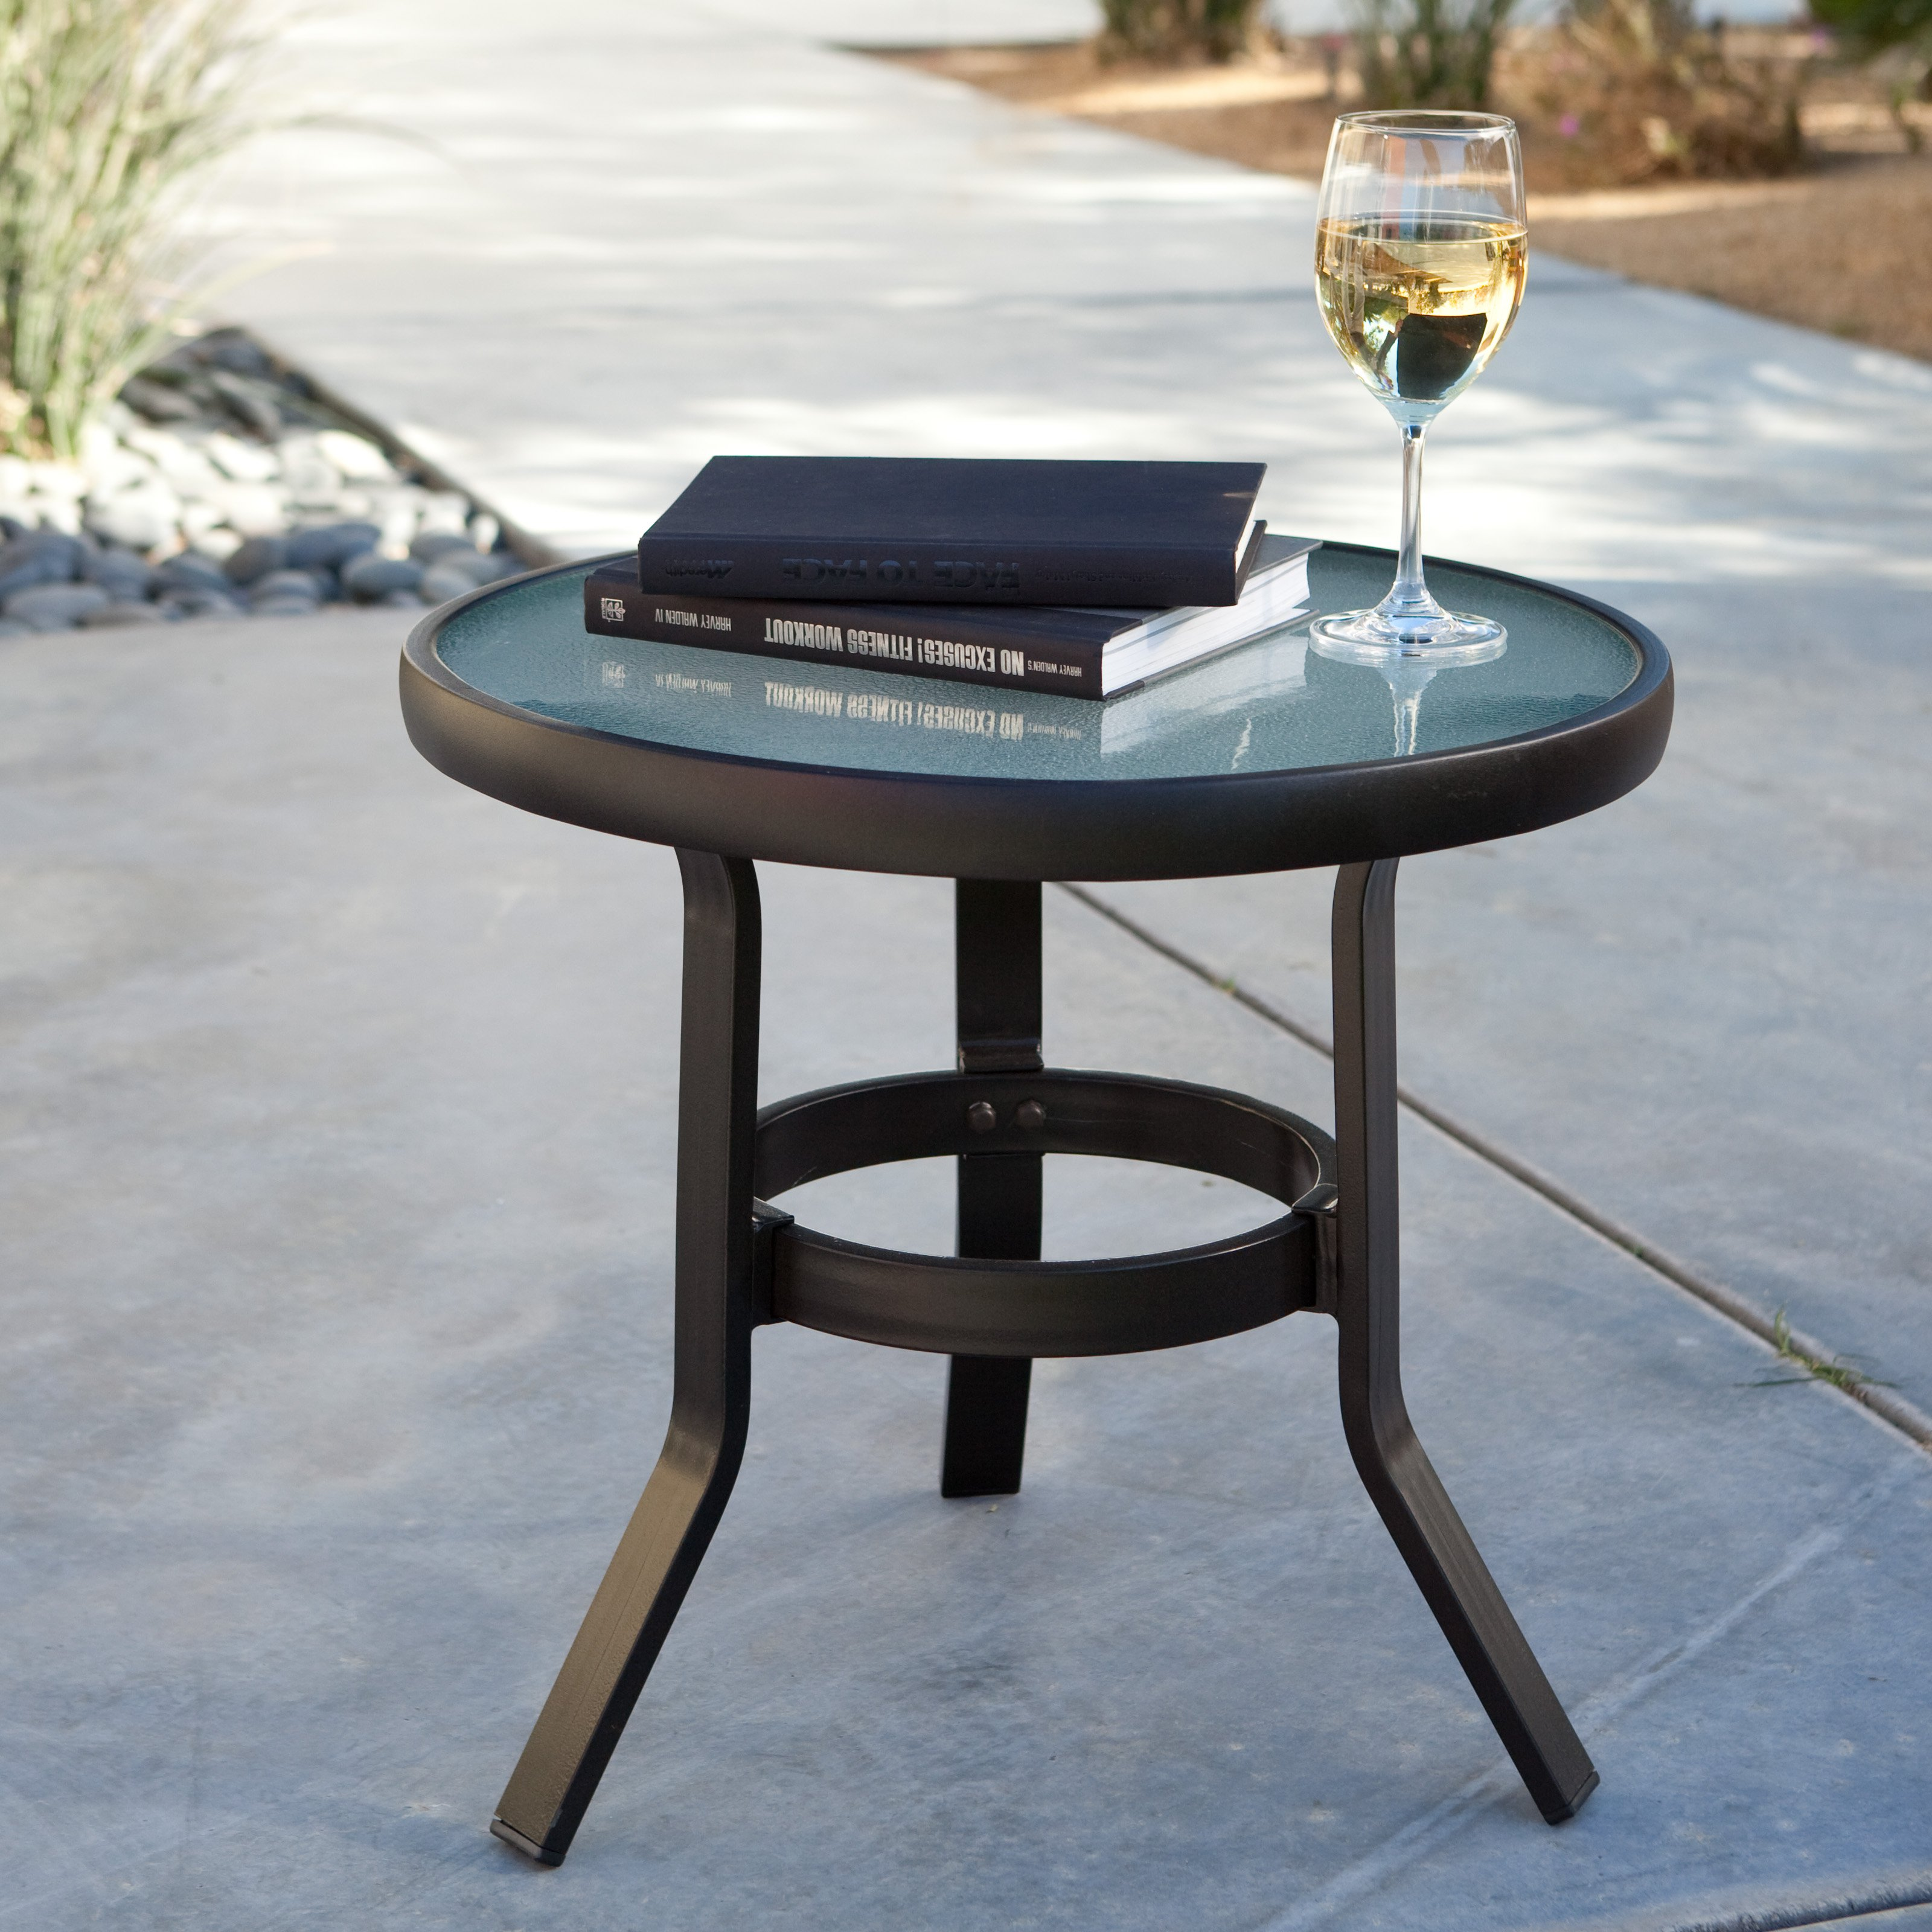 coral coast patio side table accent tables unfinished wicker target outdoor concrete wood wooden furniture bangalore black metal nesting pier one dining chairs white cube end room